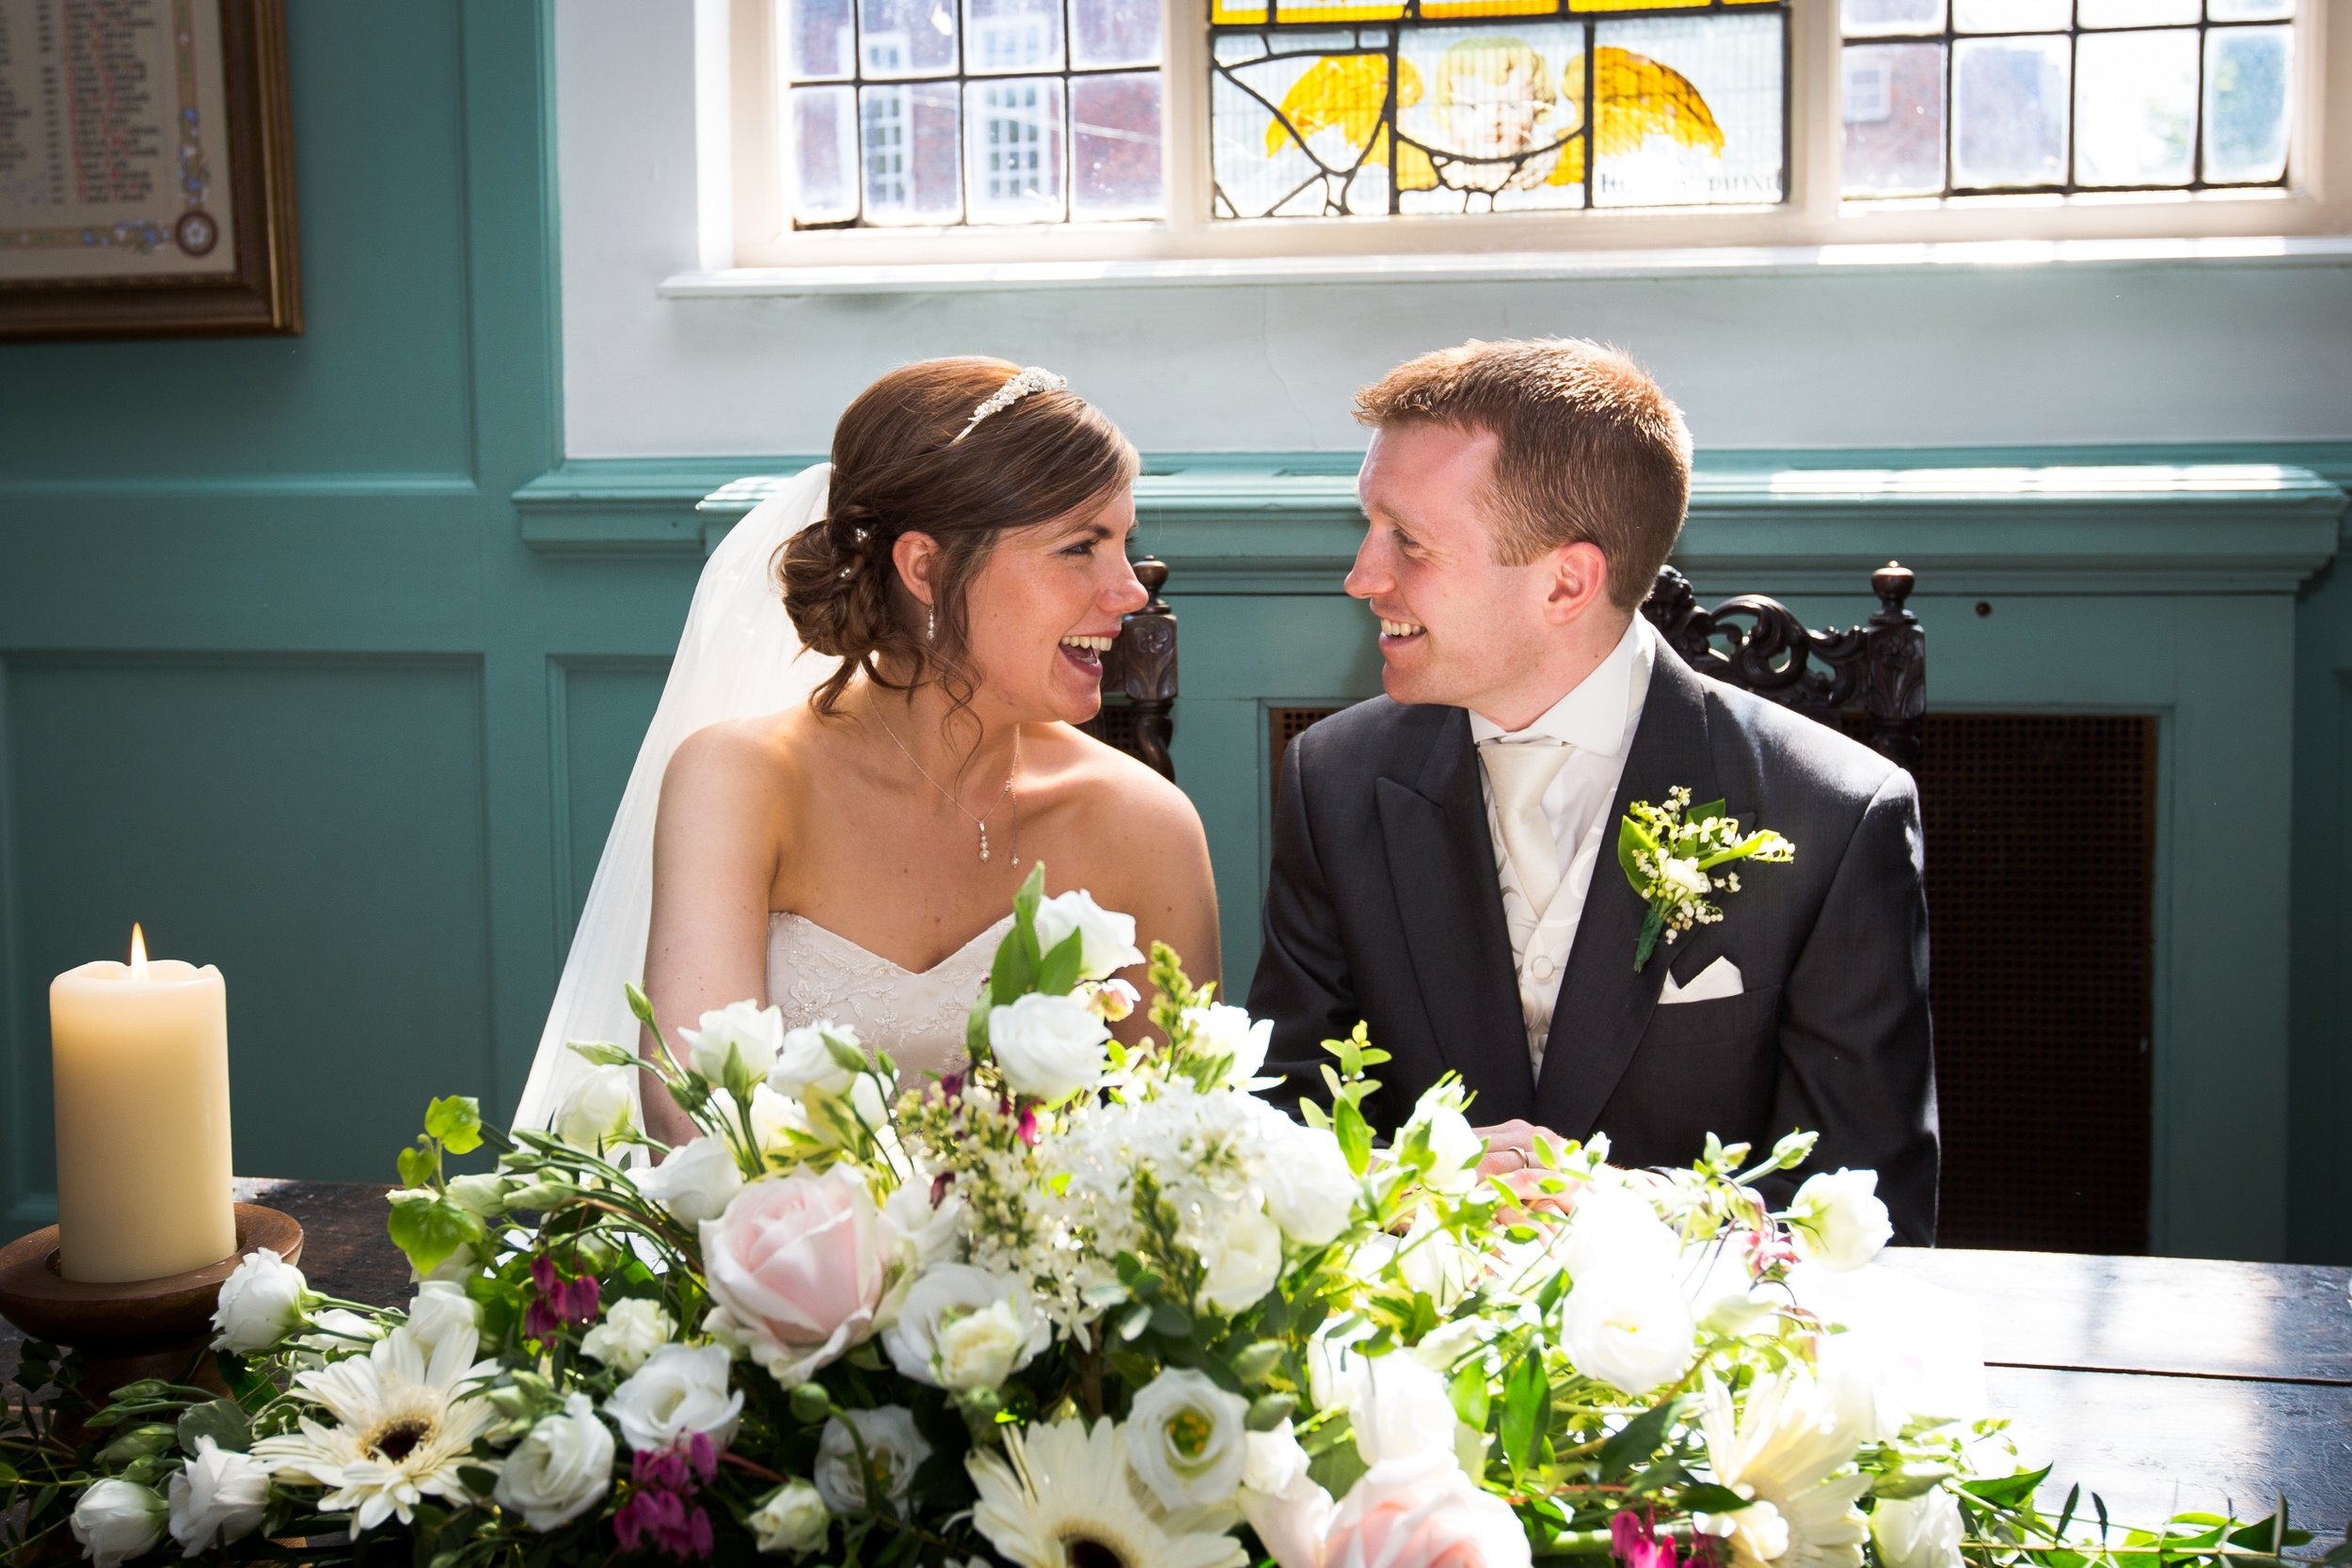 Weddings - Romantic, medieval venue in the heart of YorkReception only or ceremony+reception packagesCapacity for up to 120 guestsOutside space and gardensBespoke food and drink menusLicensed bar